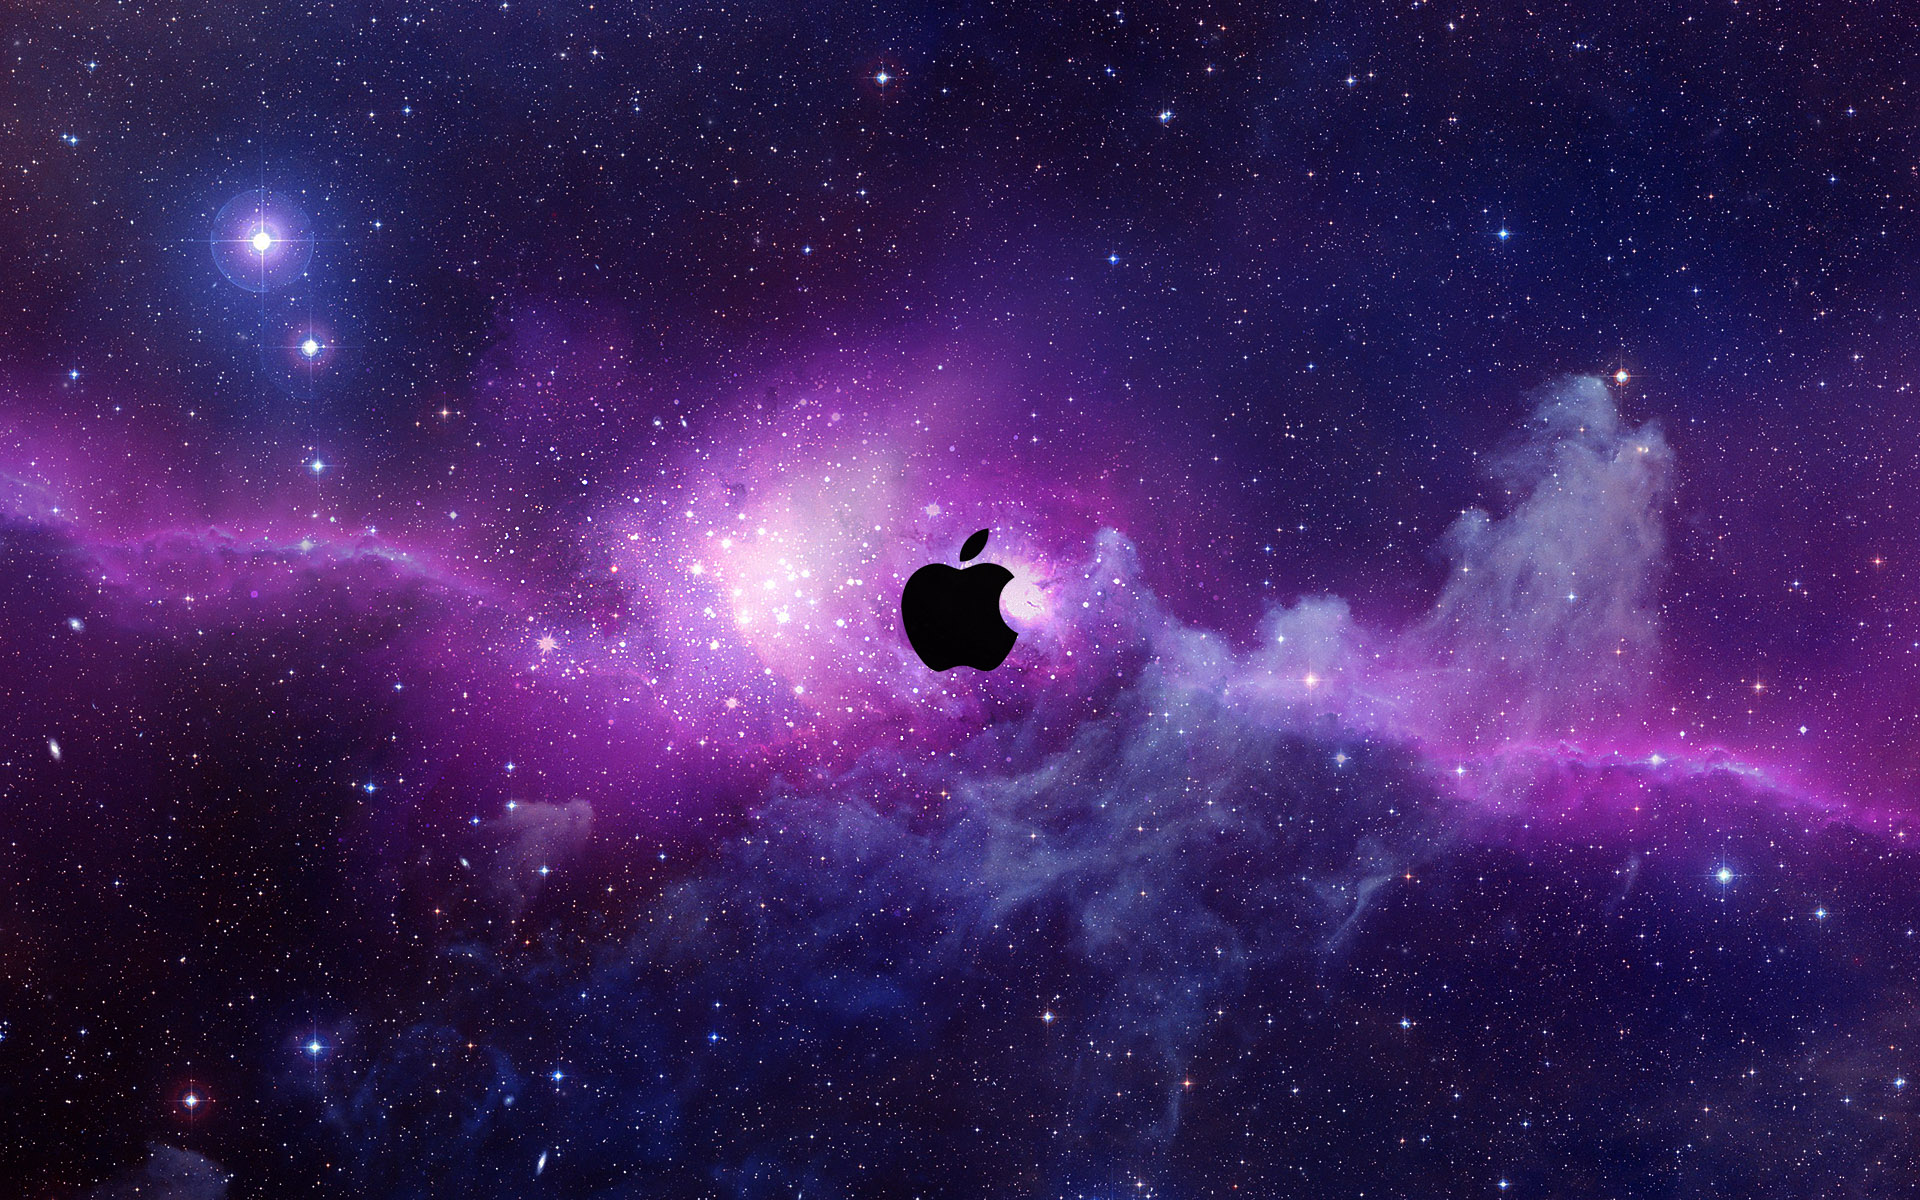 Apple mac wallpapers for your desktop to give it a new and fresh look